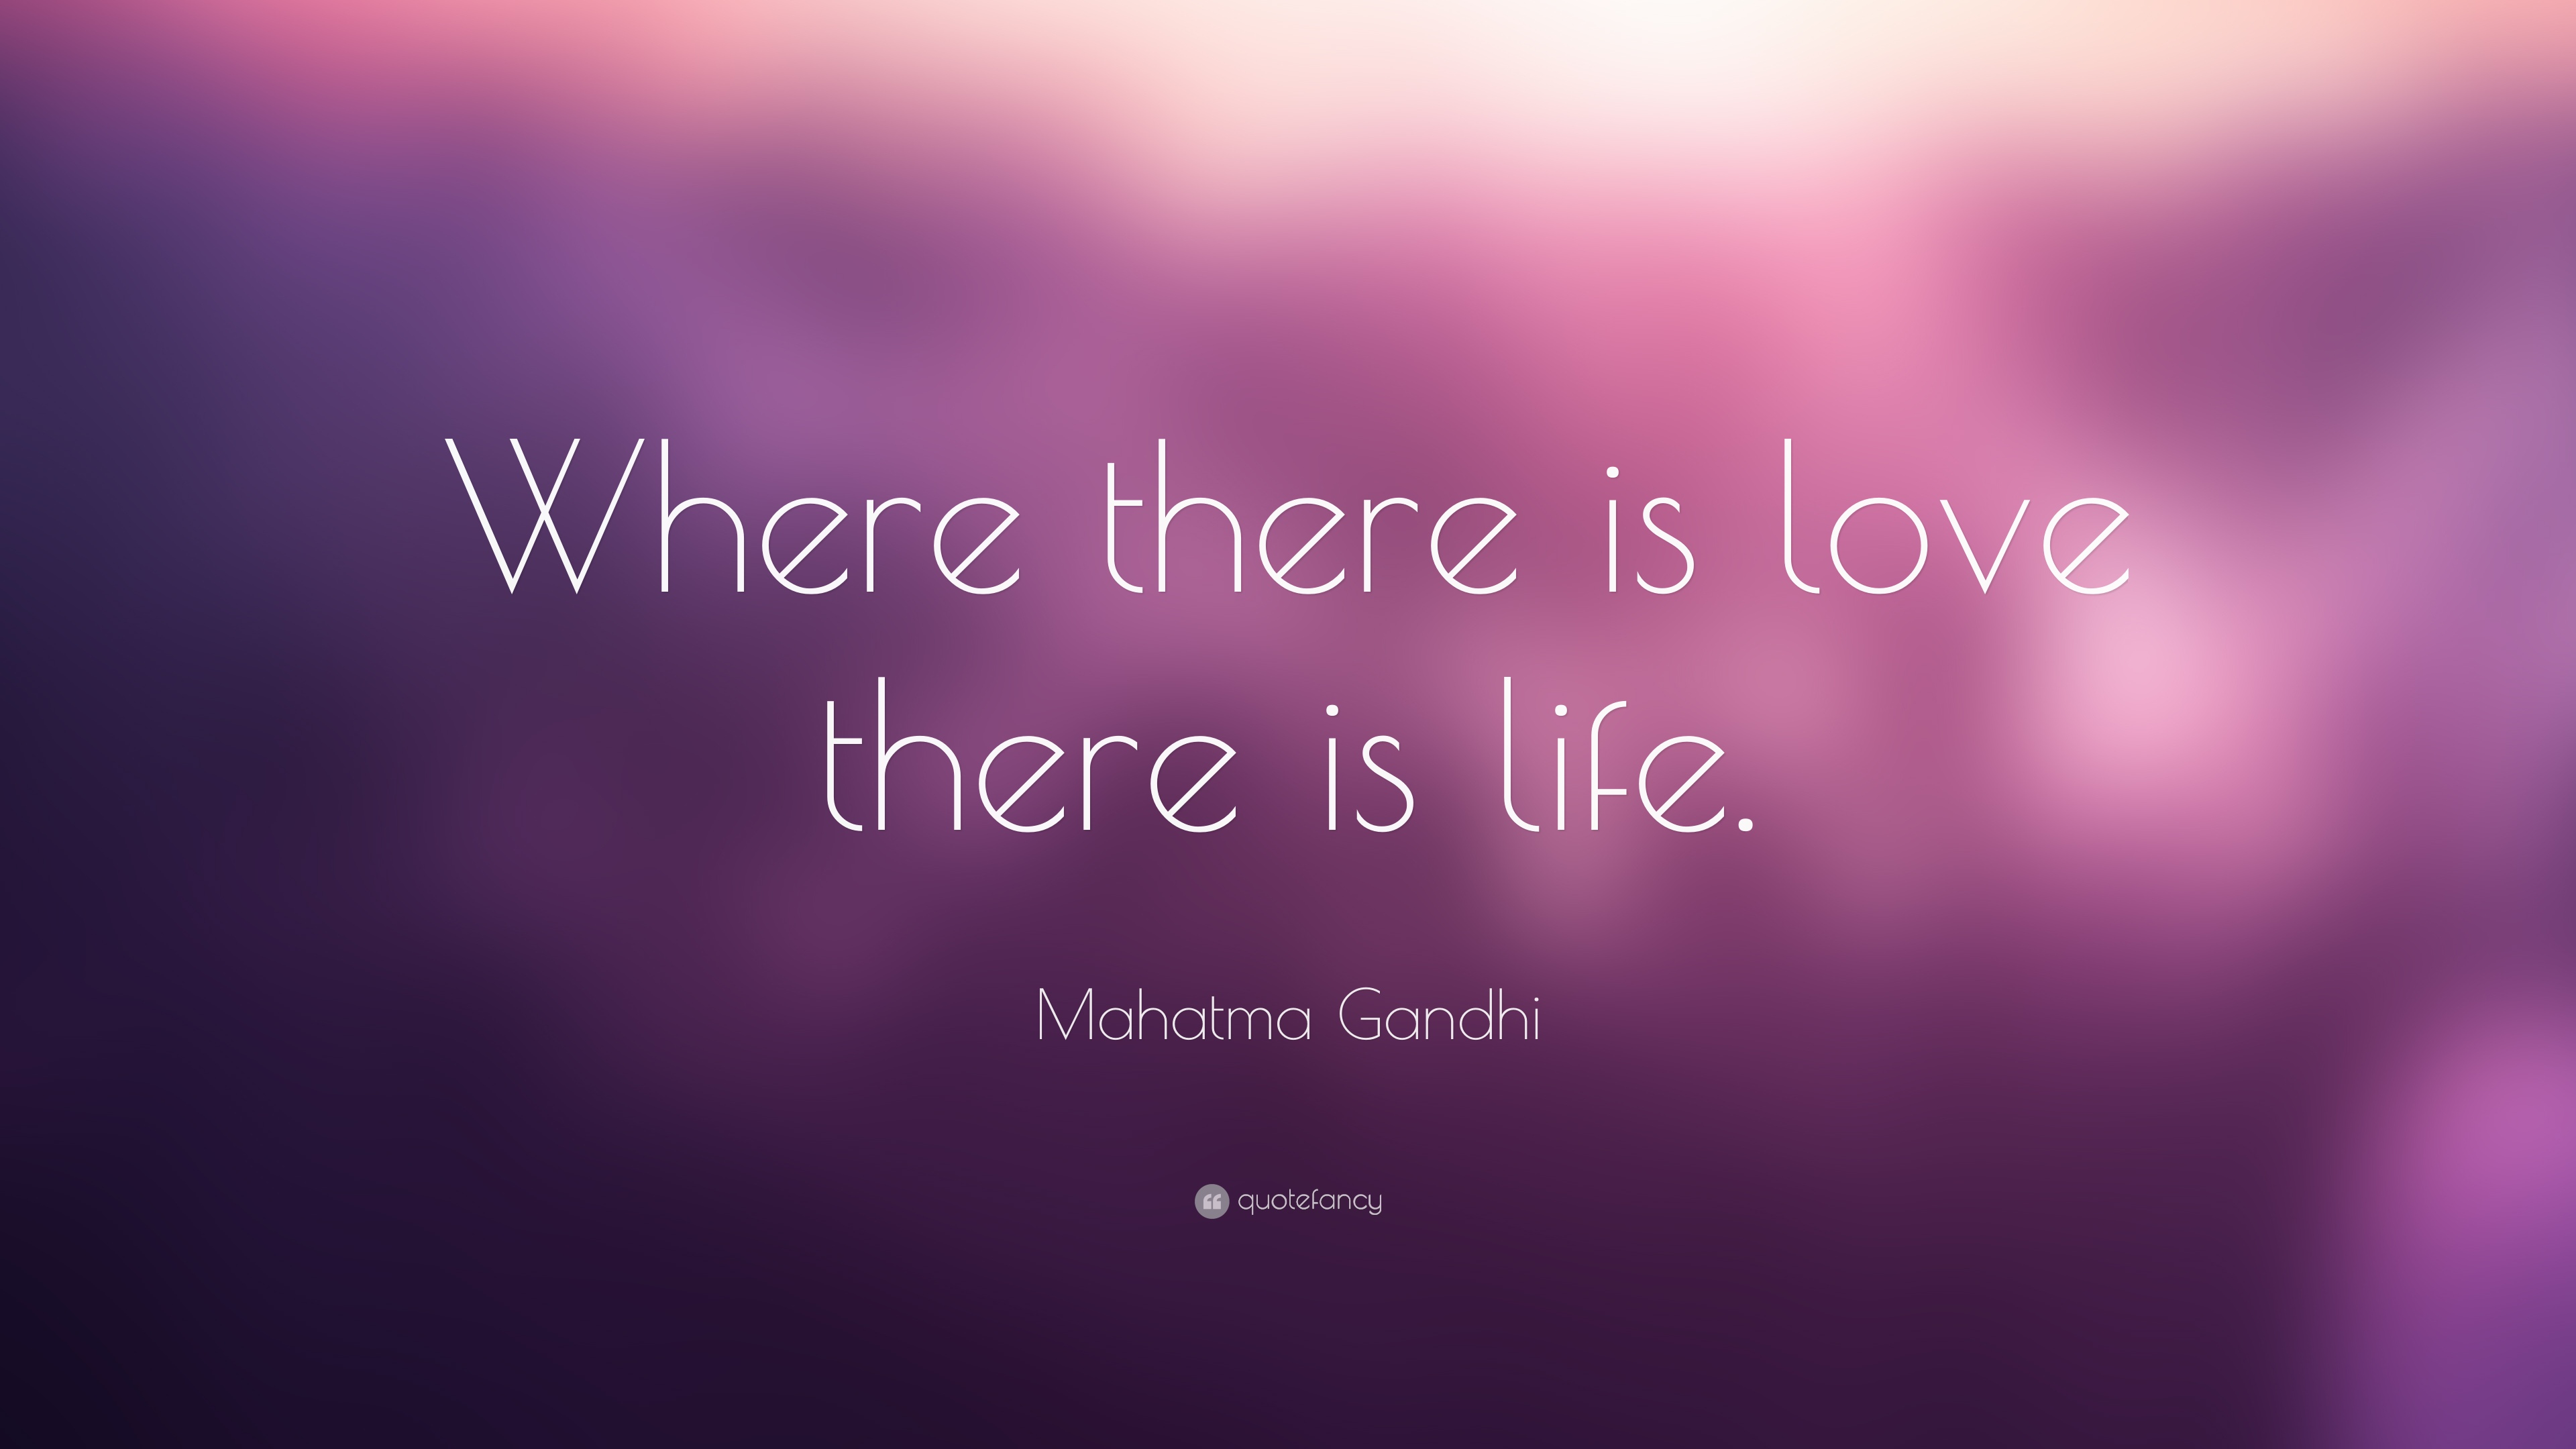 Lovely Quotes About Life Love Quotes 26 Wallpapers  Quotefancy